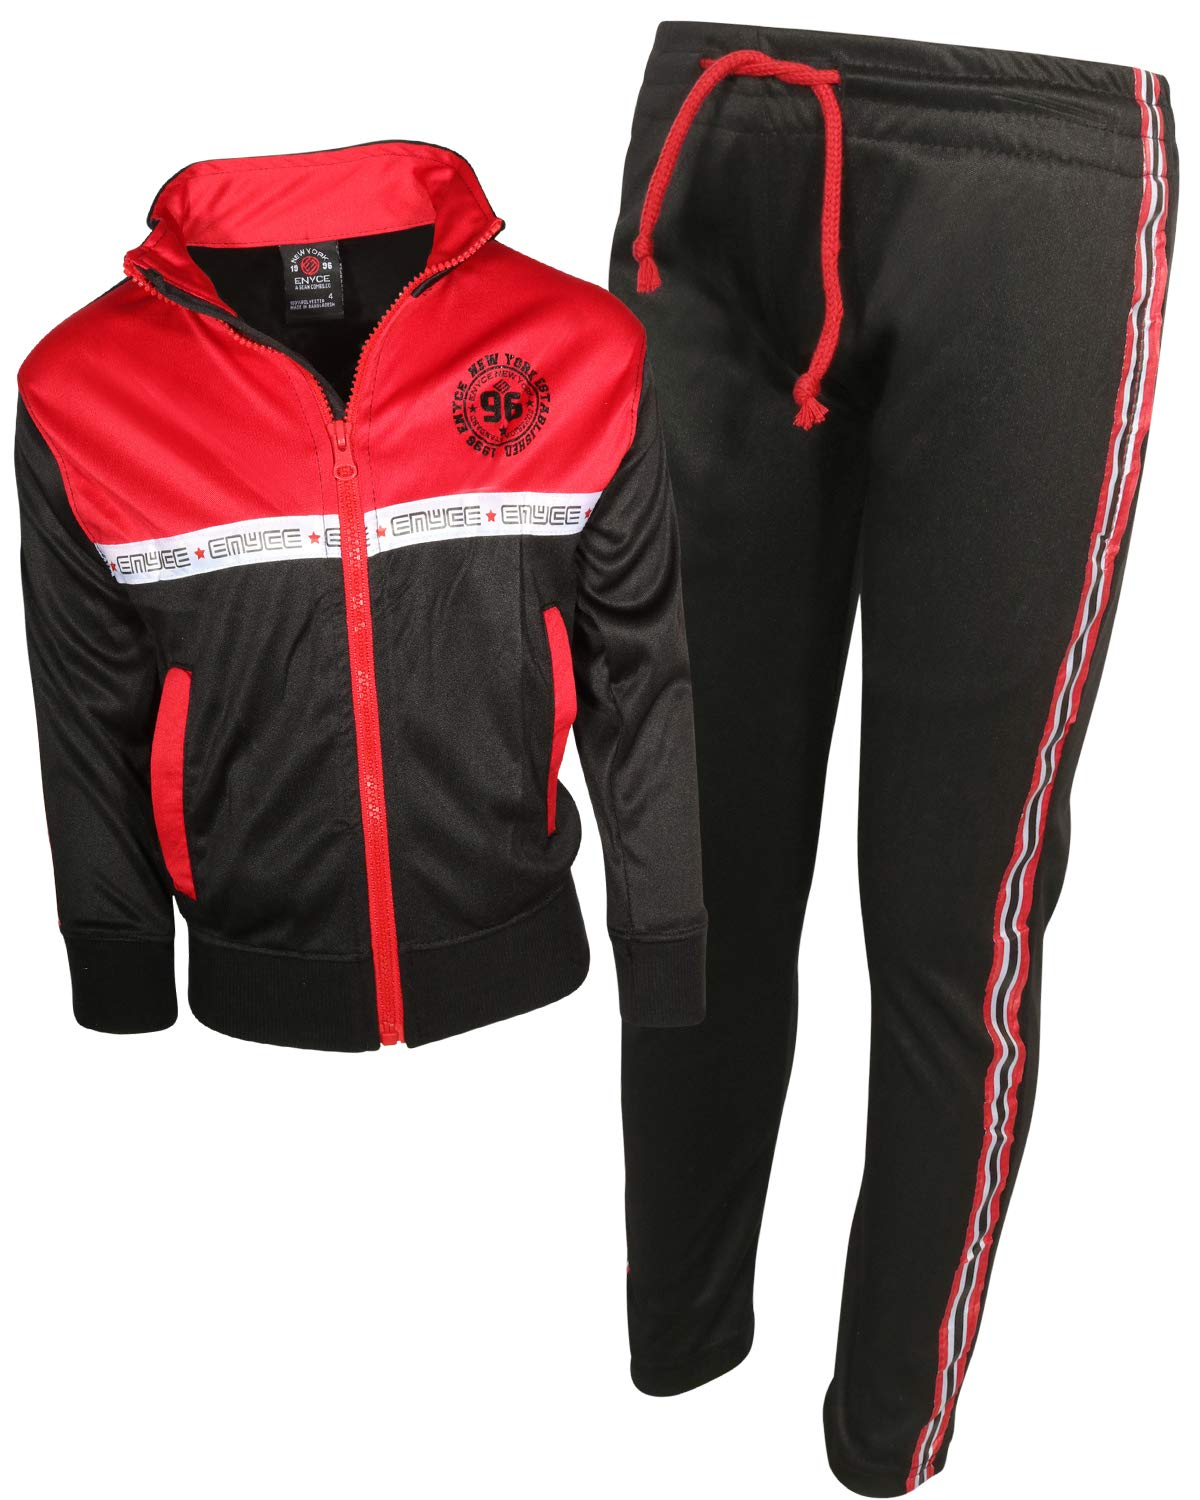 Enyce Boys Activewear 2 Piece Performance Tracksuit Set with Long Sleeve Top and Pants, Black/Red Side Taping, Size 12/14'